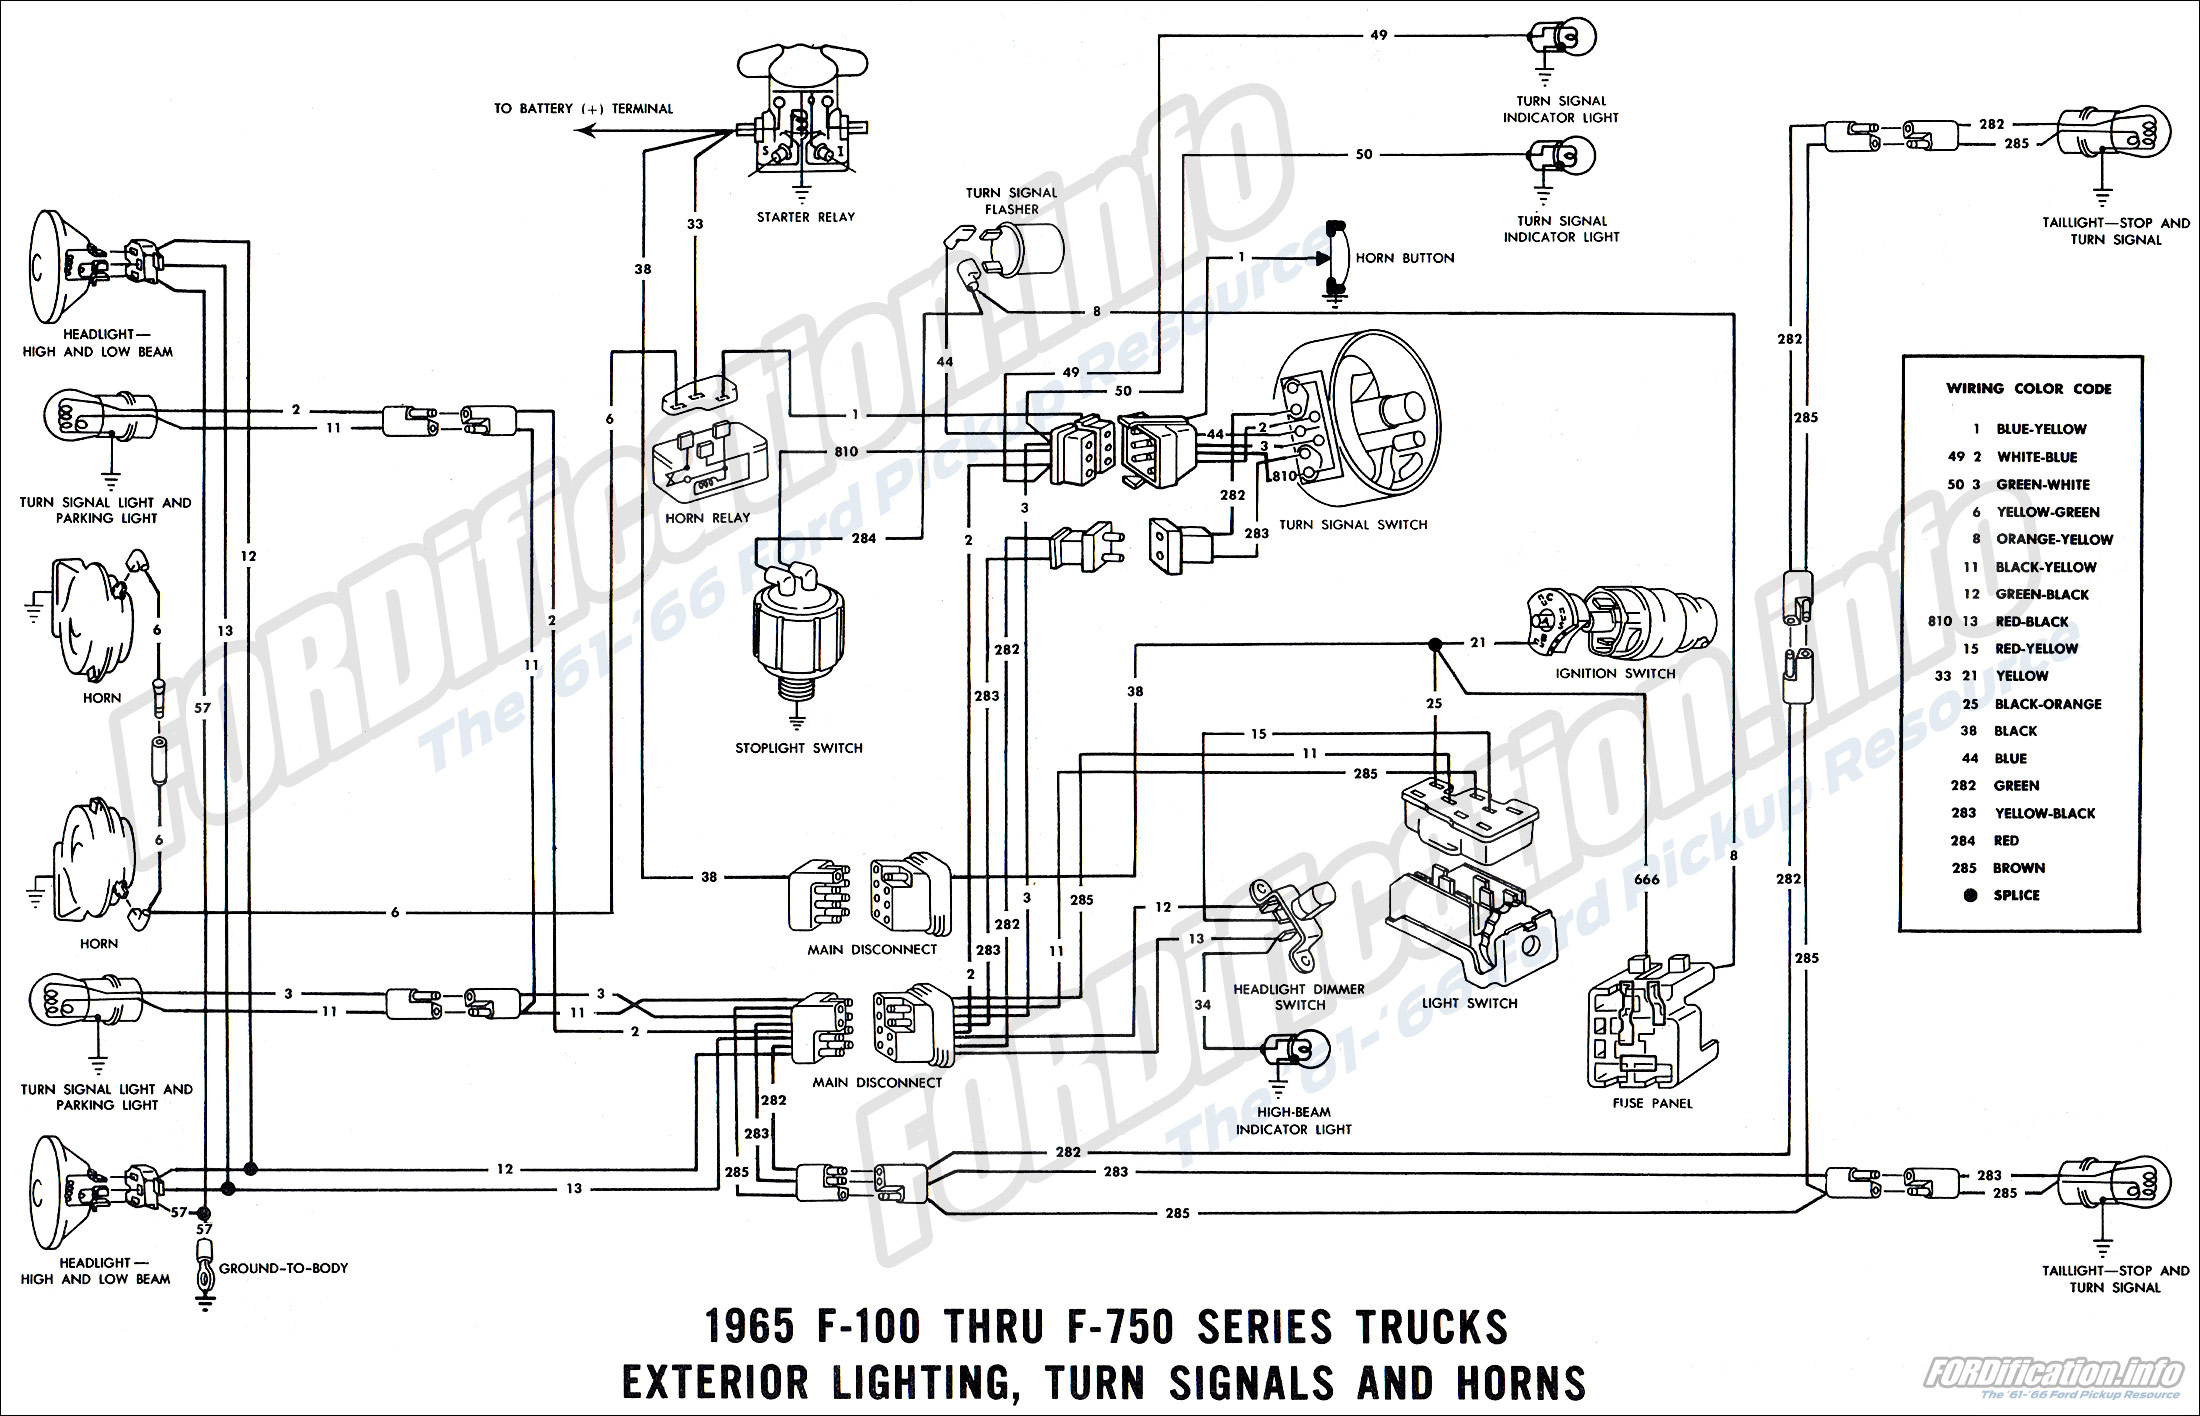 Outstanding 1965 Ford Truck Wiring Diagrams Fordification Info The 61 66 Wiring Cloud Biosomenaidewilluminateatxorg